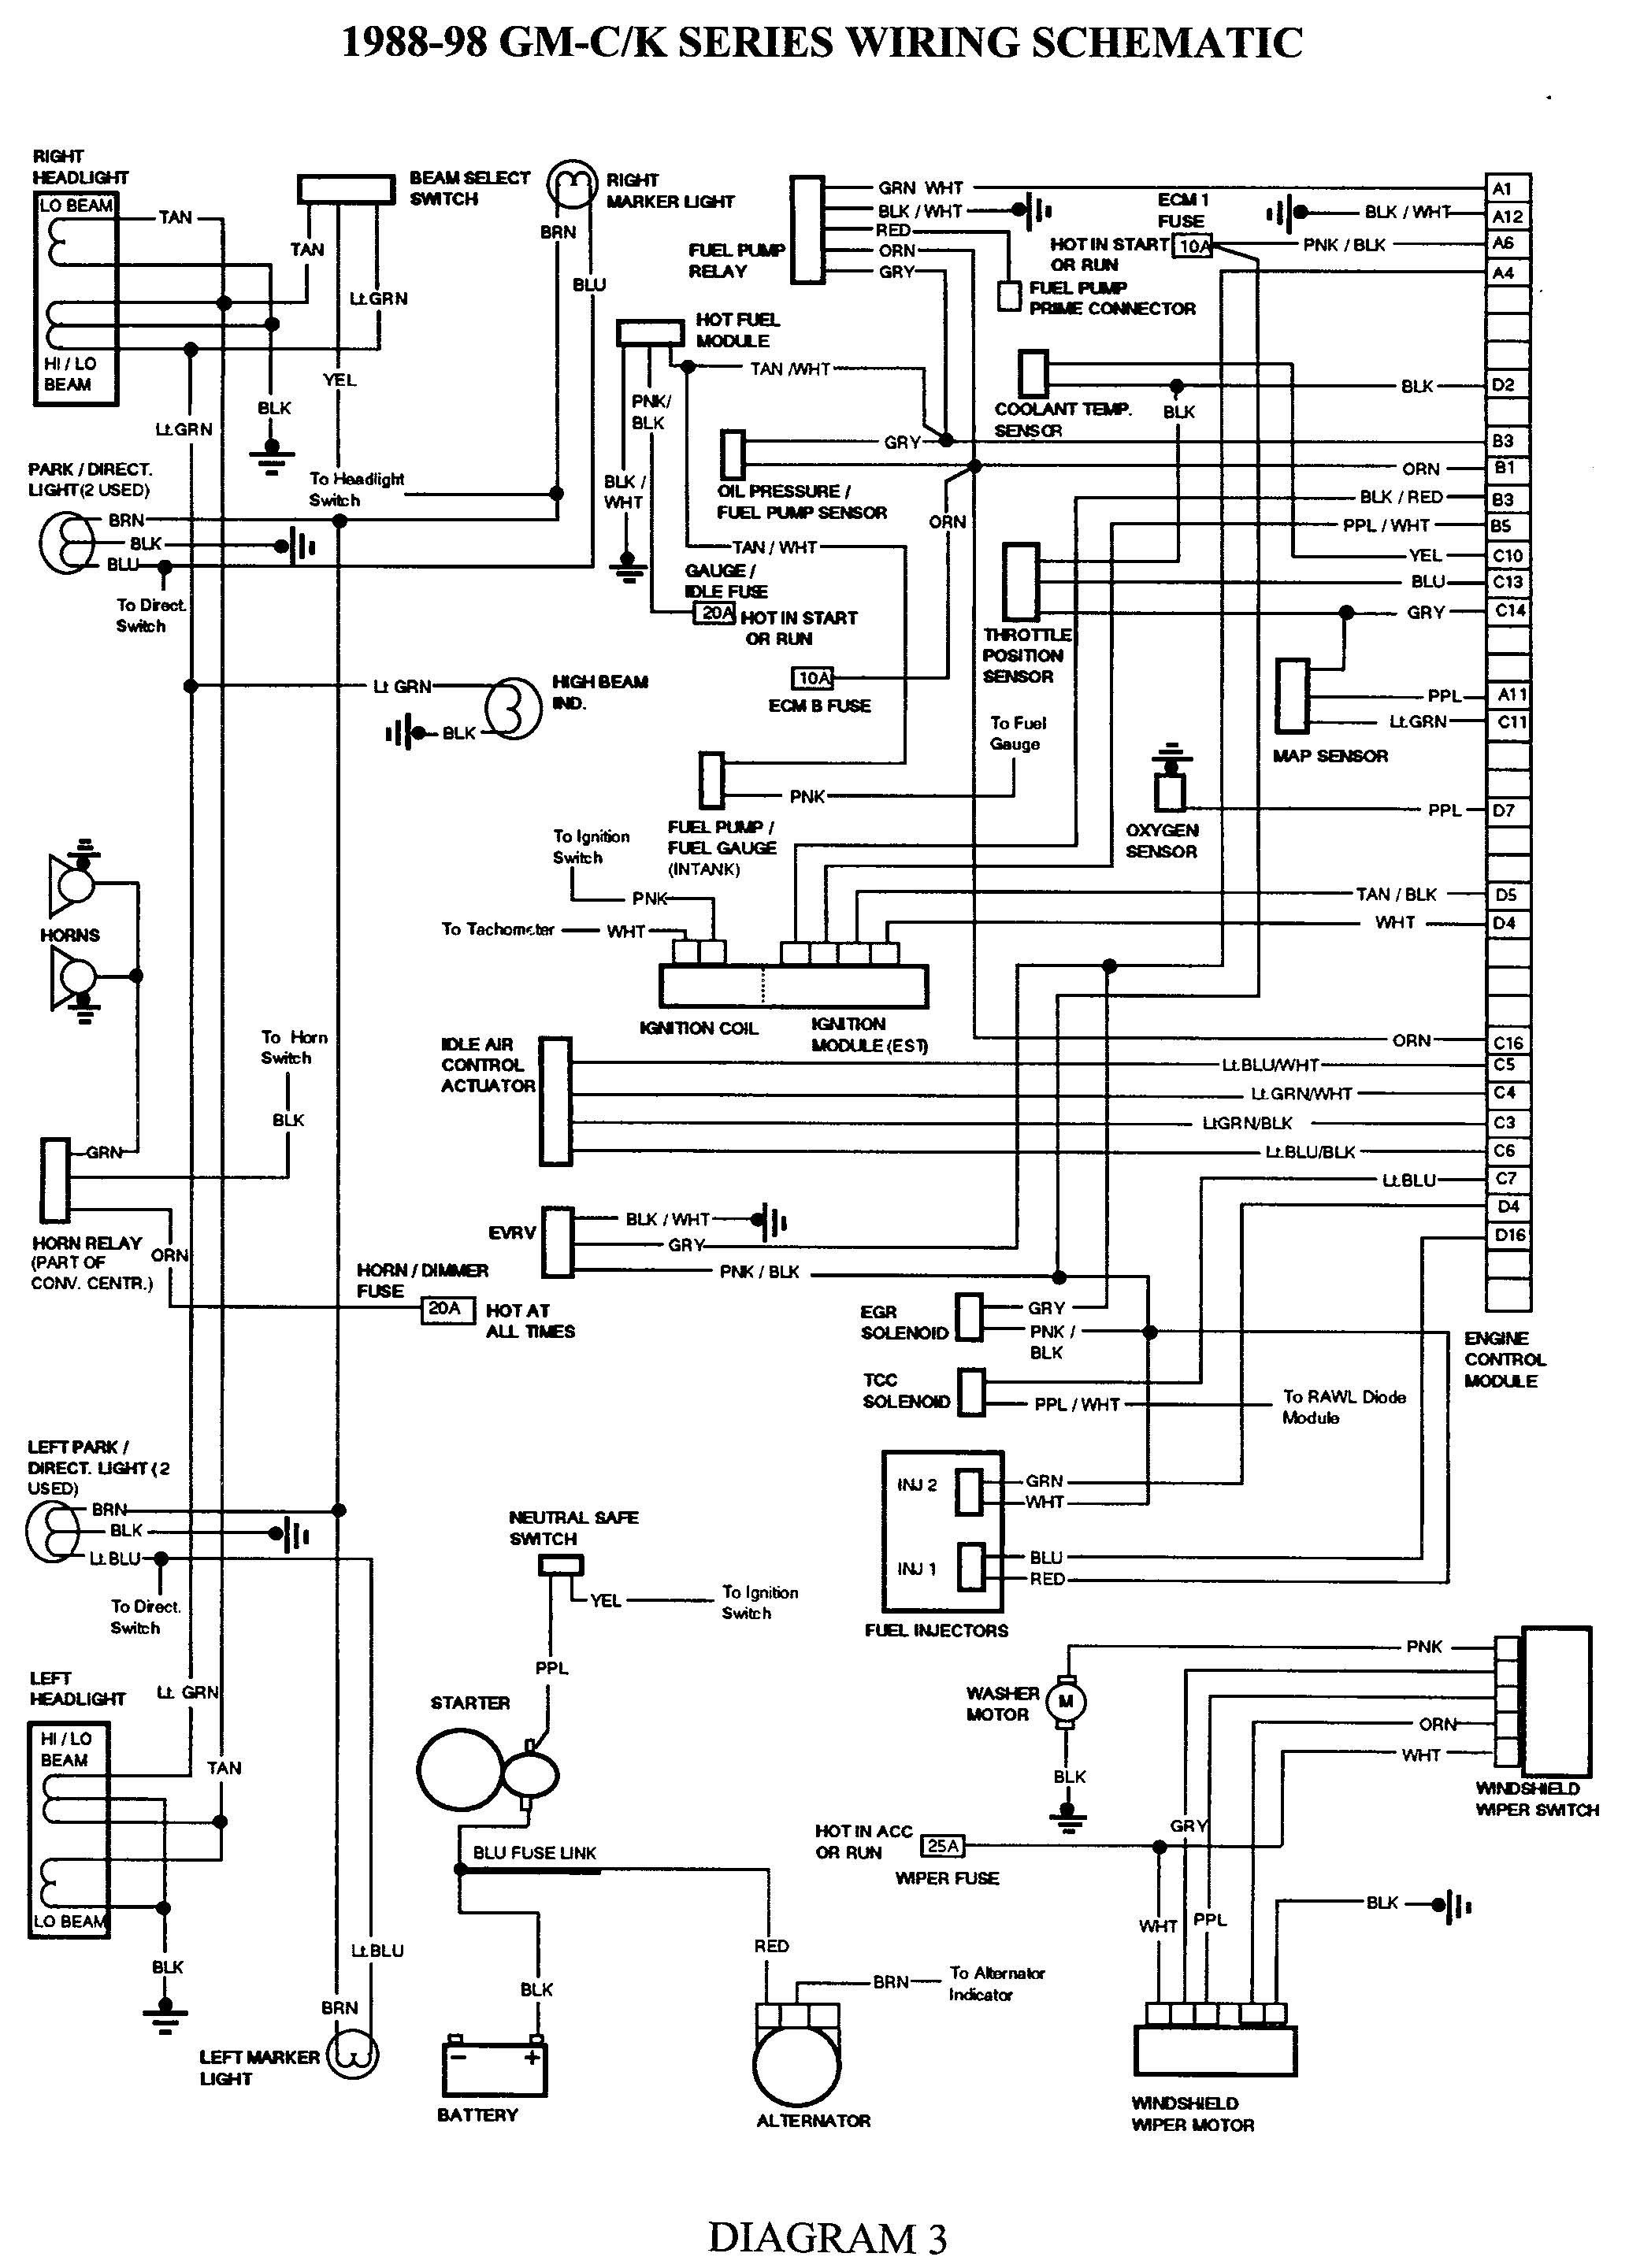 89 chevy s10 wiring diagram wire center \u2022 1992 chevy s10 wiring diagram 5 7 chevy wiring diagram residential electrical symbols u2022 rh bookmyad co 1989 chevy s10 speaker